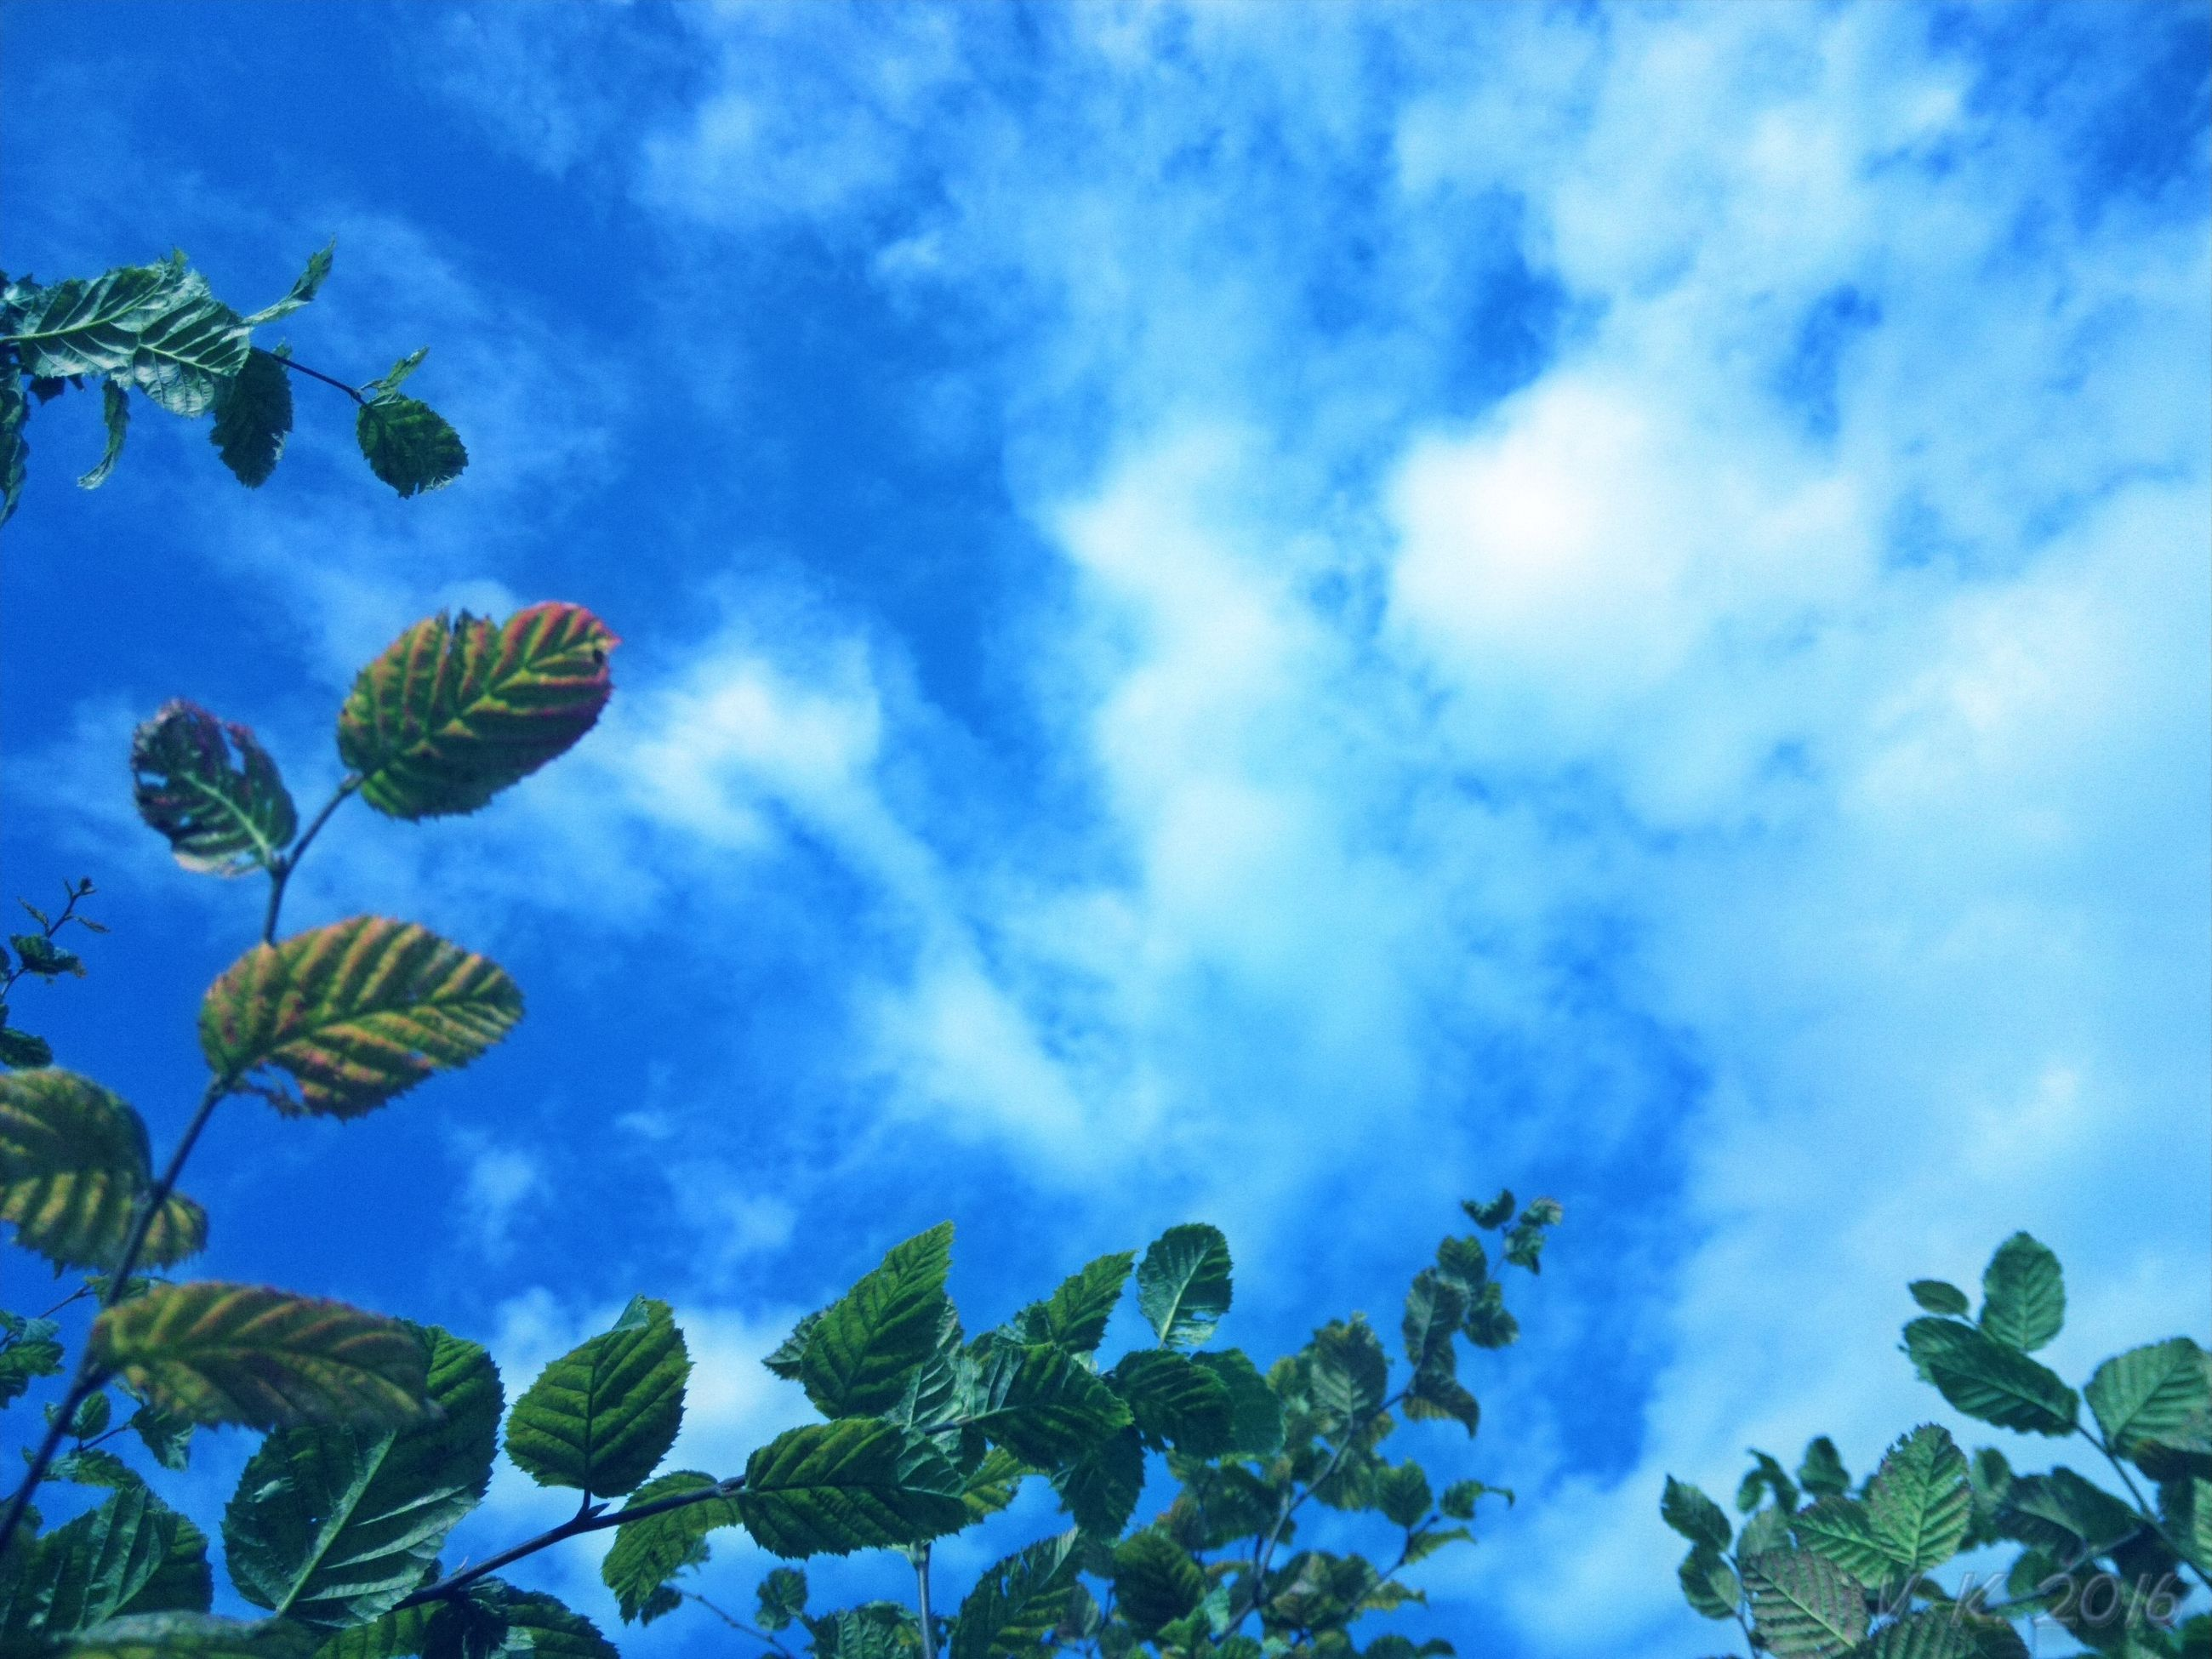 low angle view, sky, cloud, blue, beauty in nature, cloud - sky, scenics, growth, leaf, tree, nature, tranquility, tranquil scene, day, high section, cloudy, outdoors, tall - high, no people, majestic, green, cloudscape, green color